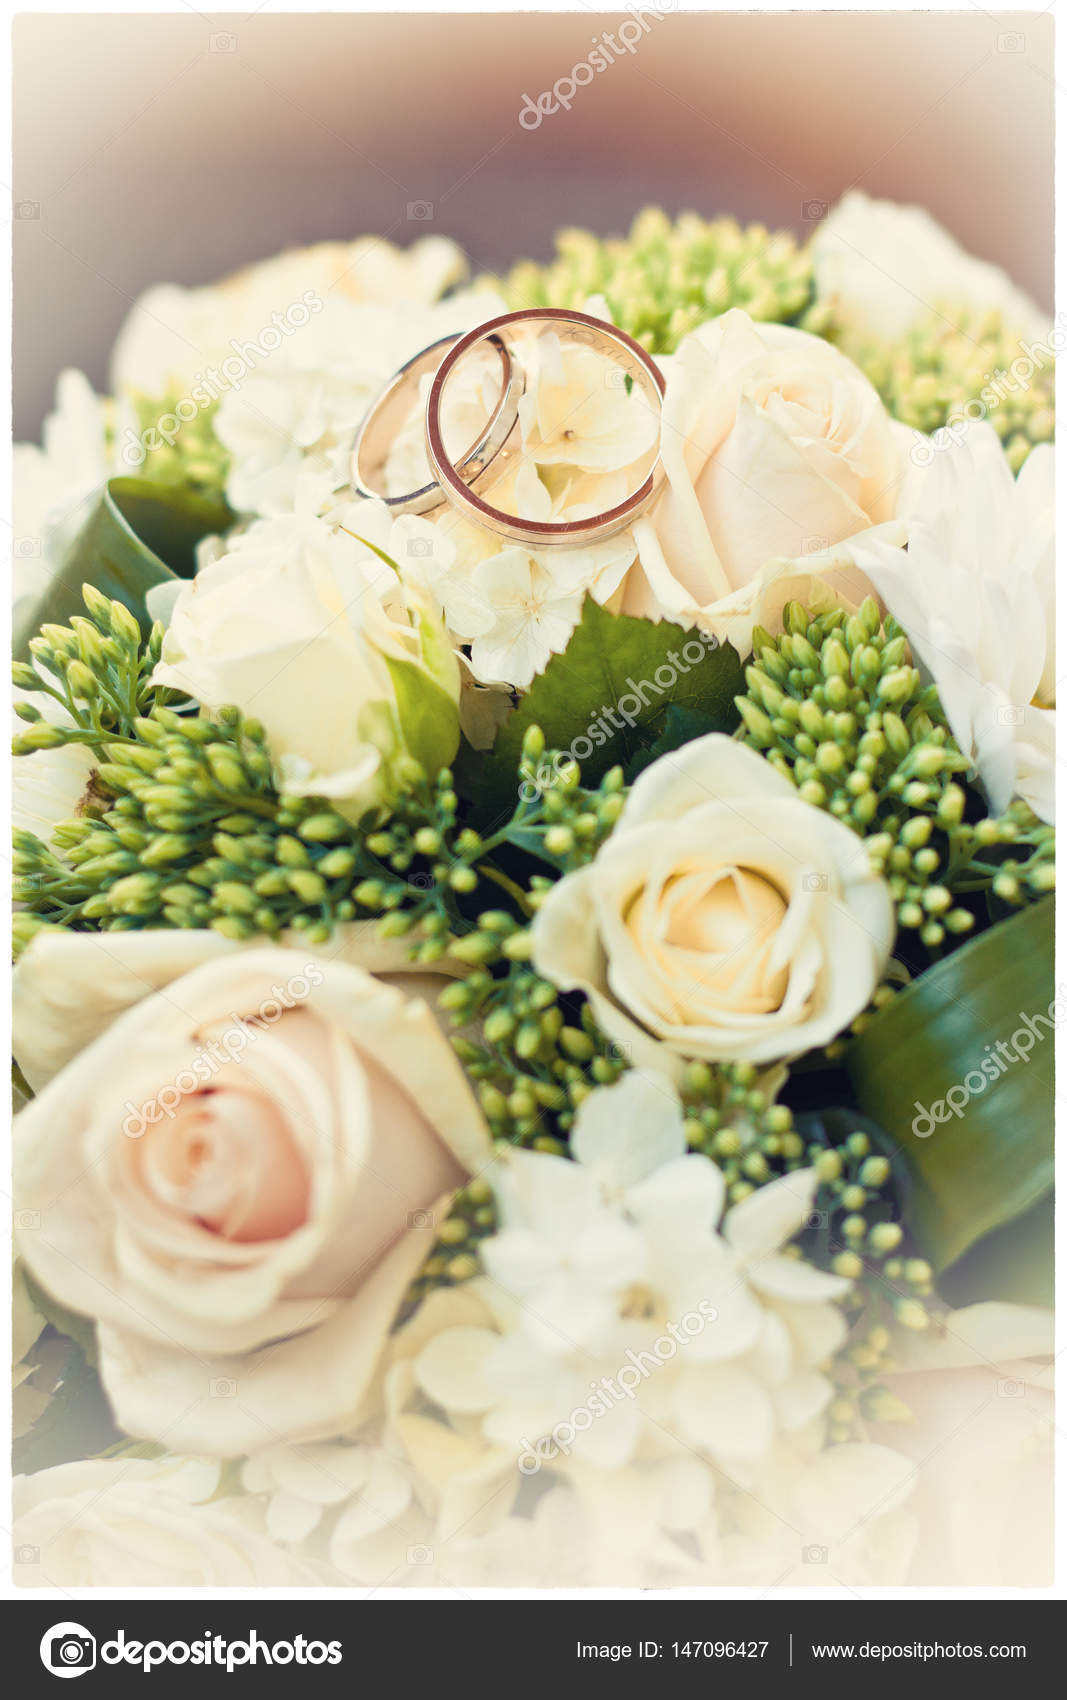 Wedding Rings Lie On A Beautiful Bouquet Roses Bridal Accessories European American Photo By Bondvit